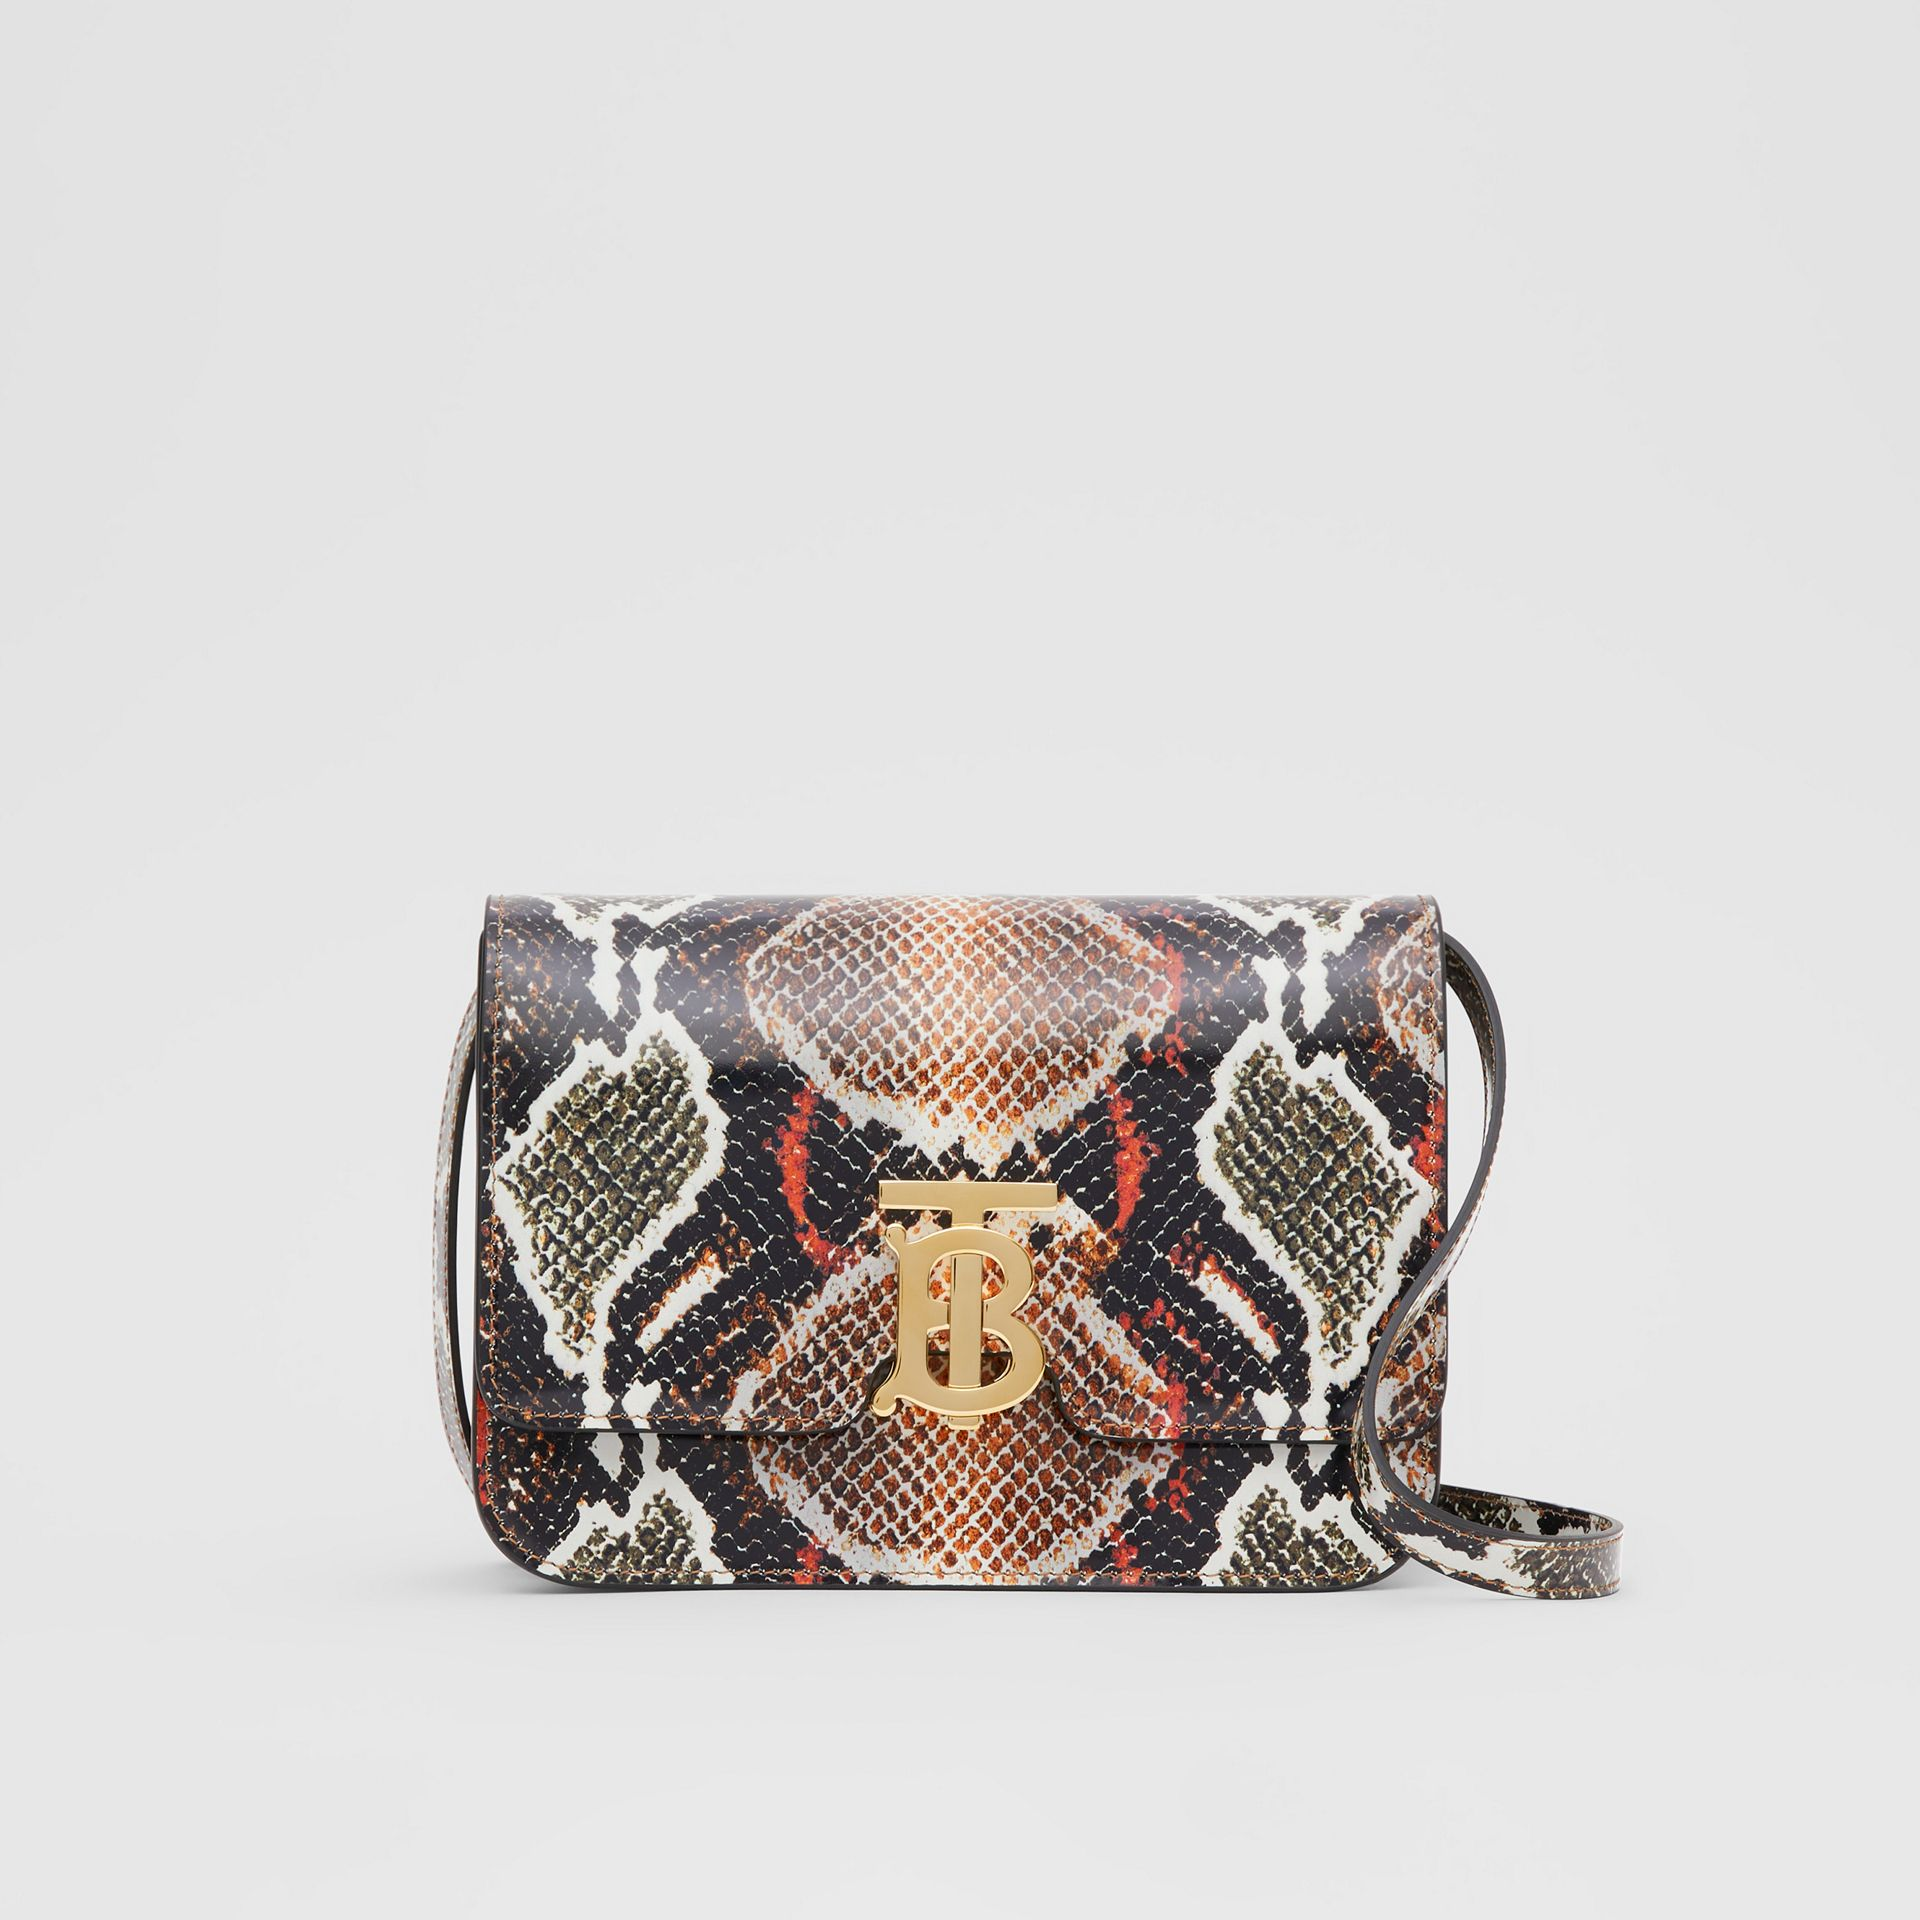 Small Python Print Leather TB Bag in Soft Cocoa - Women | Burberry - gallery image 0